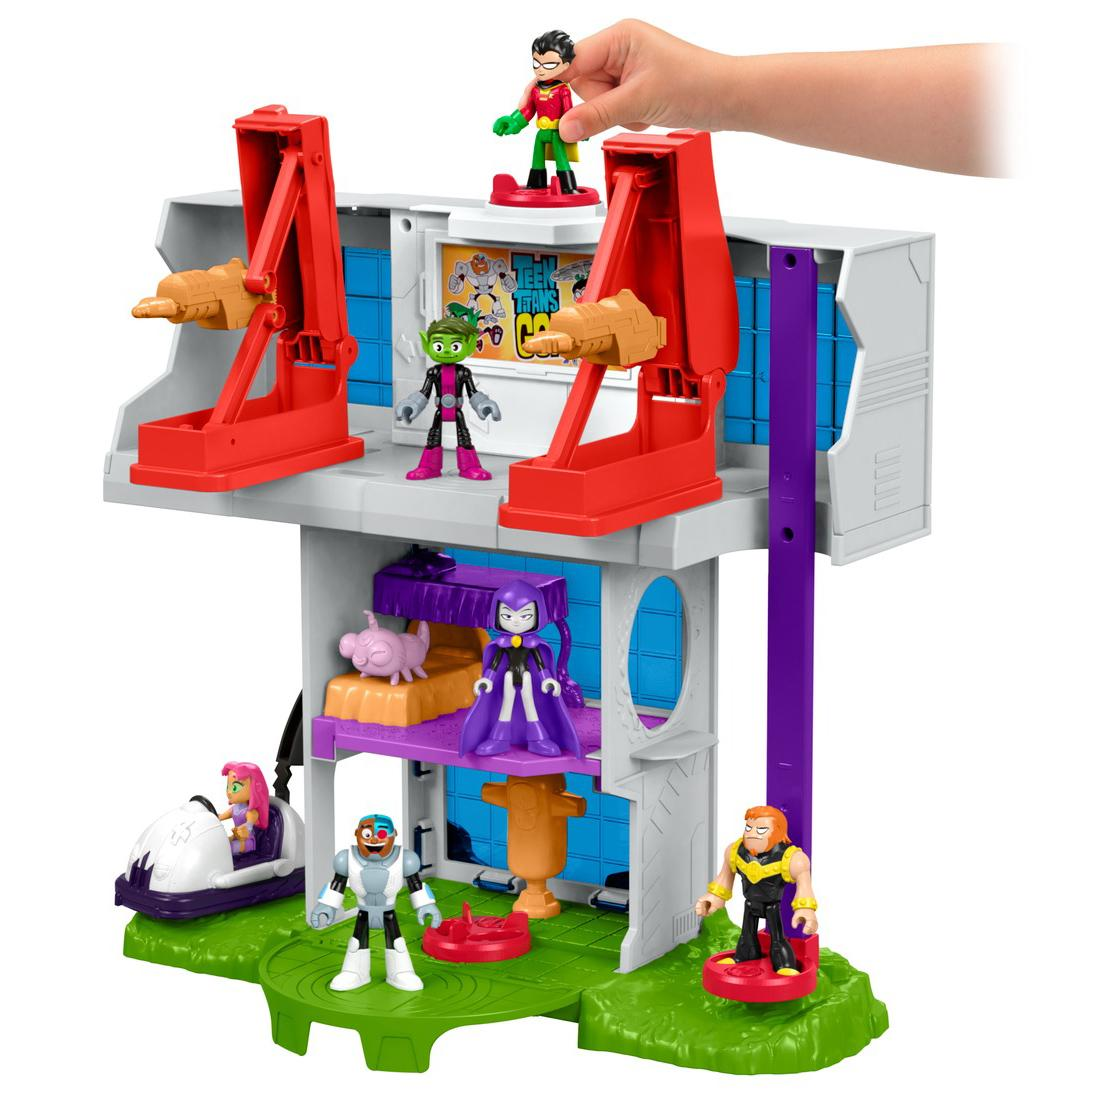 Teen Titan Toy : Fisher price imaginext teen titans go tower amazon